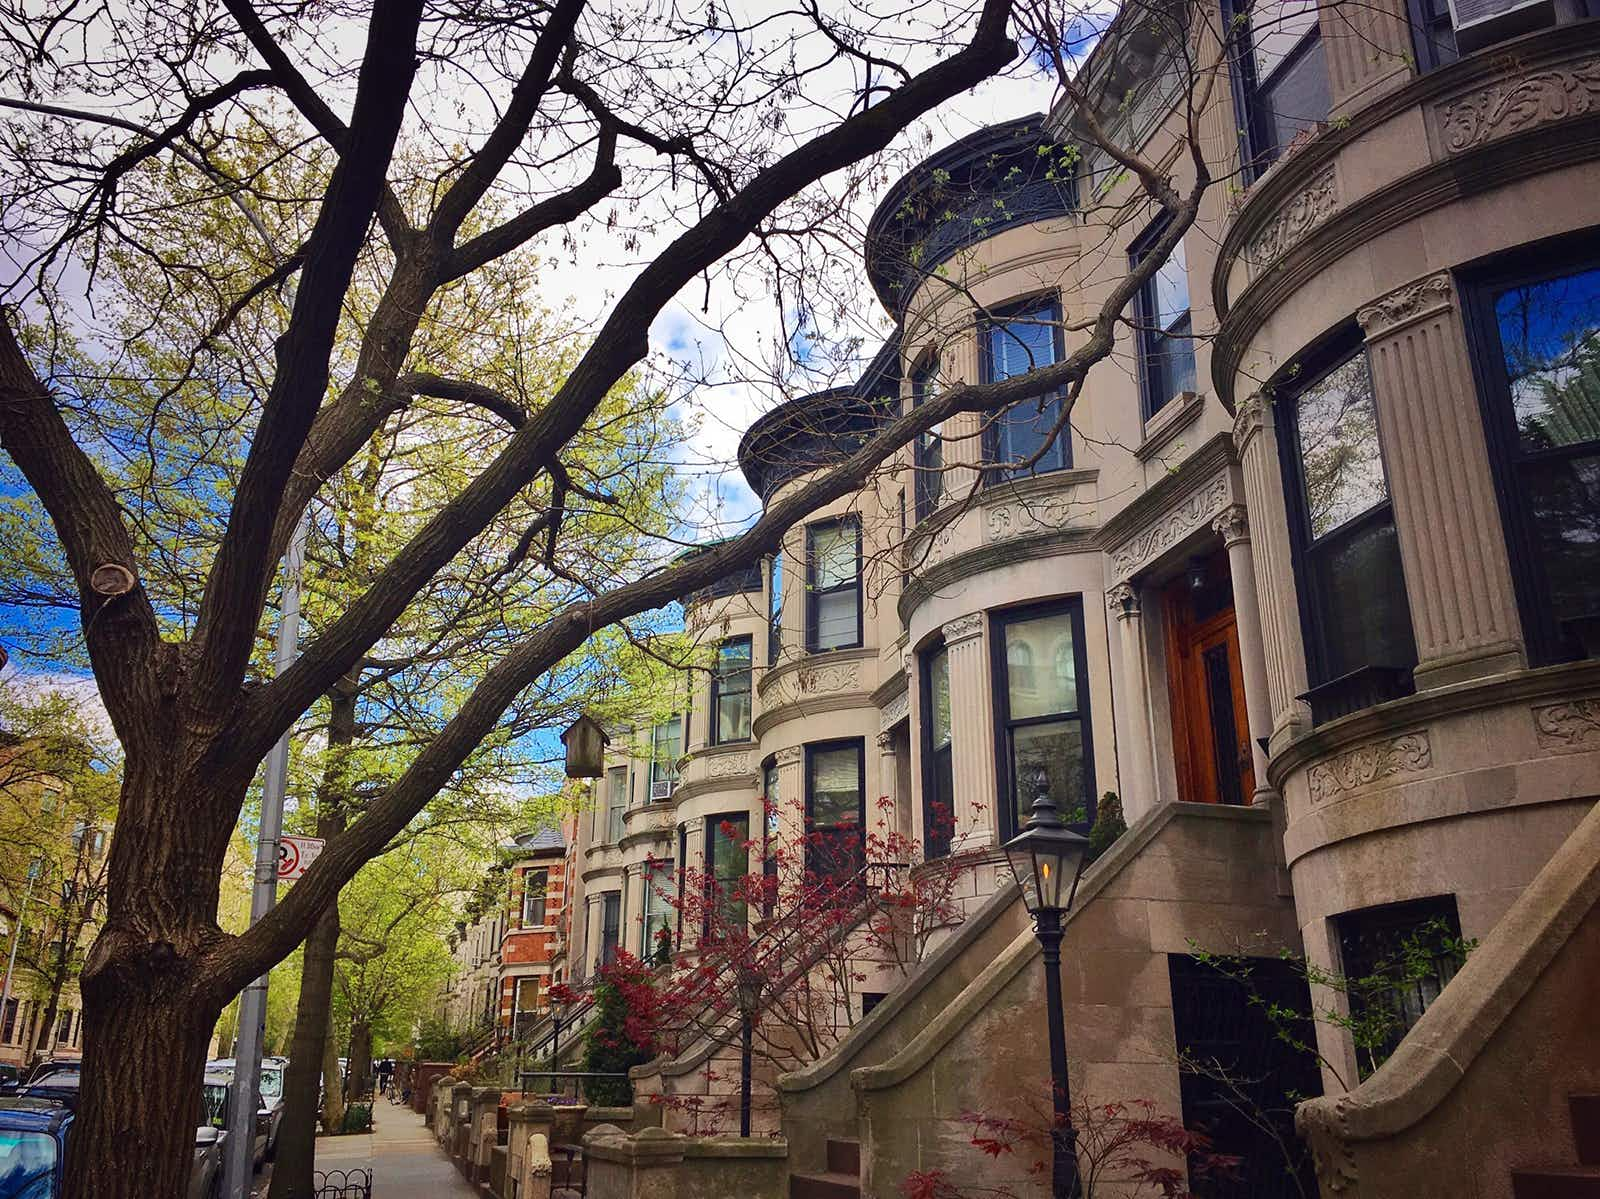 19th-century brownstones in Park Slope, Brooklyn during springtime on a sunny day